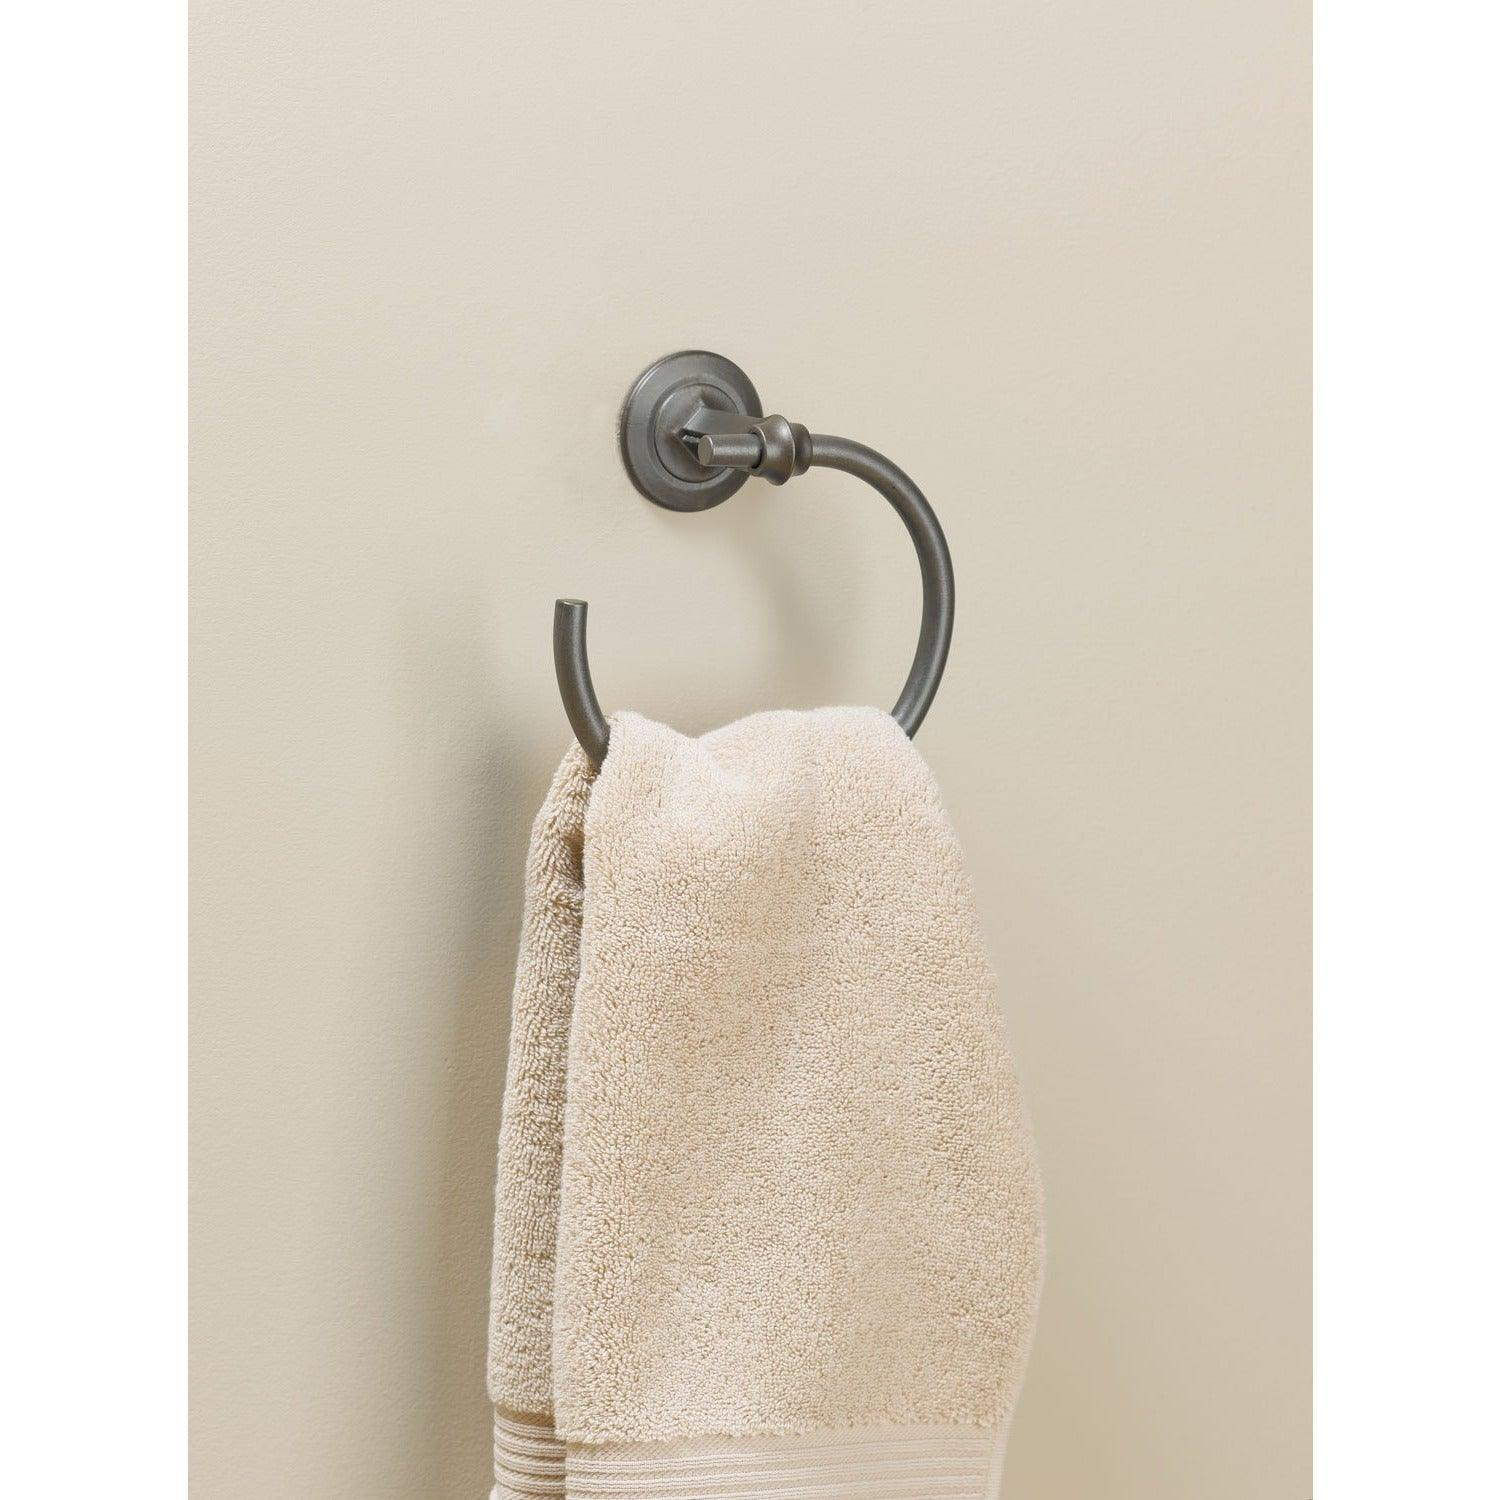 Hubbardton Forge - 844003-08 - Towel Ring - Rook - Burnished Steel